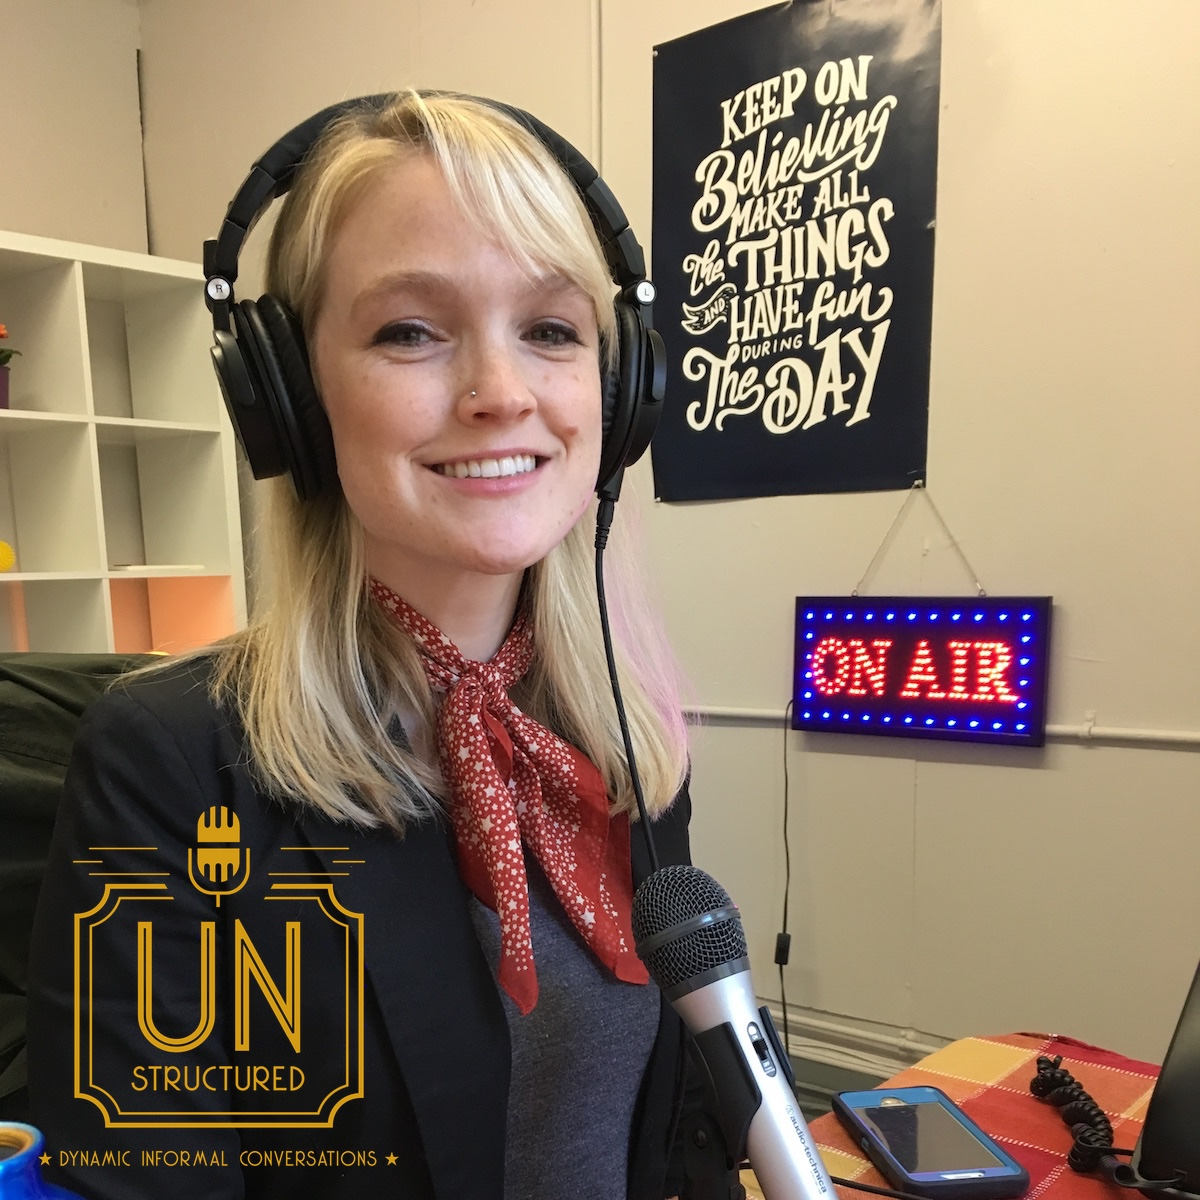 087 - Margy Feldhuhn - Unique wide-ranging and well-researched unstructured interviews hosted by Eric Hunley UnstructuredPod Dynamic Informal Conversations